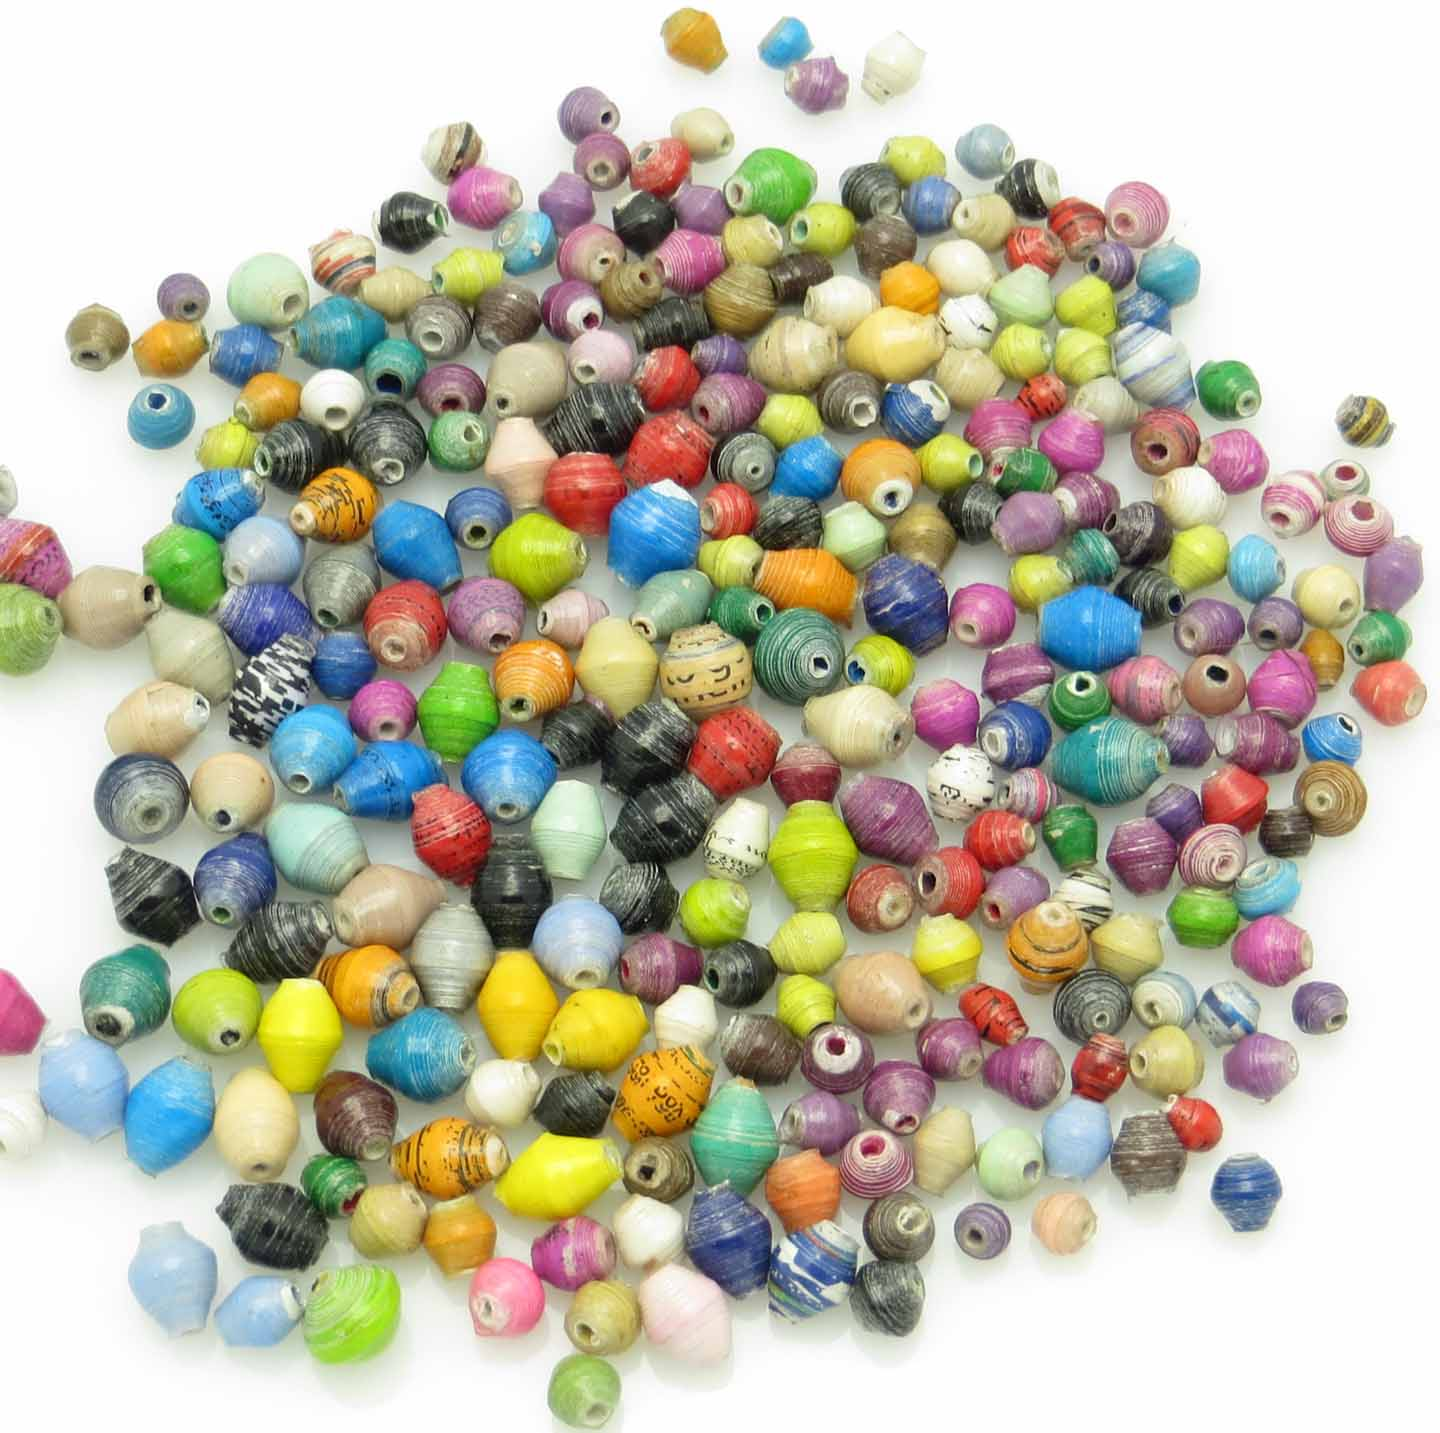 Mini & Micro Beads - many colors